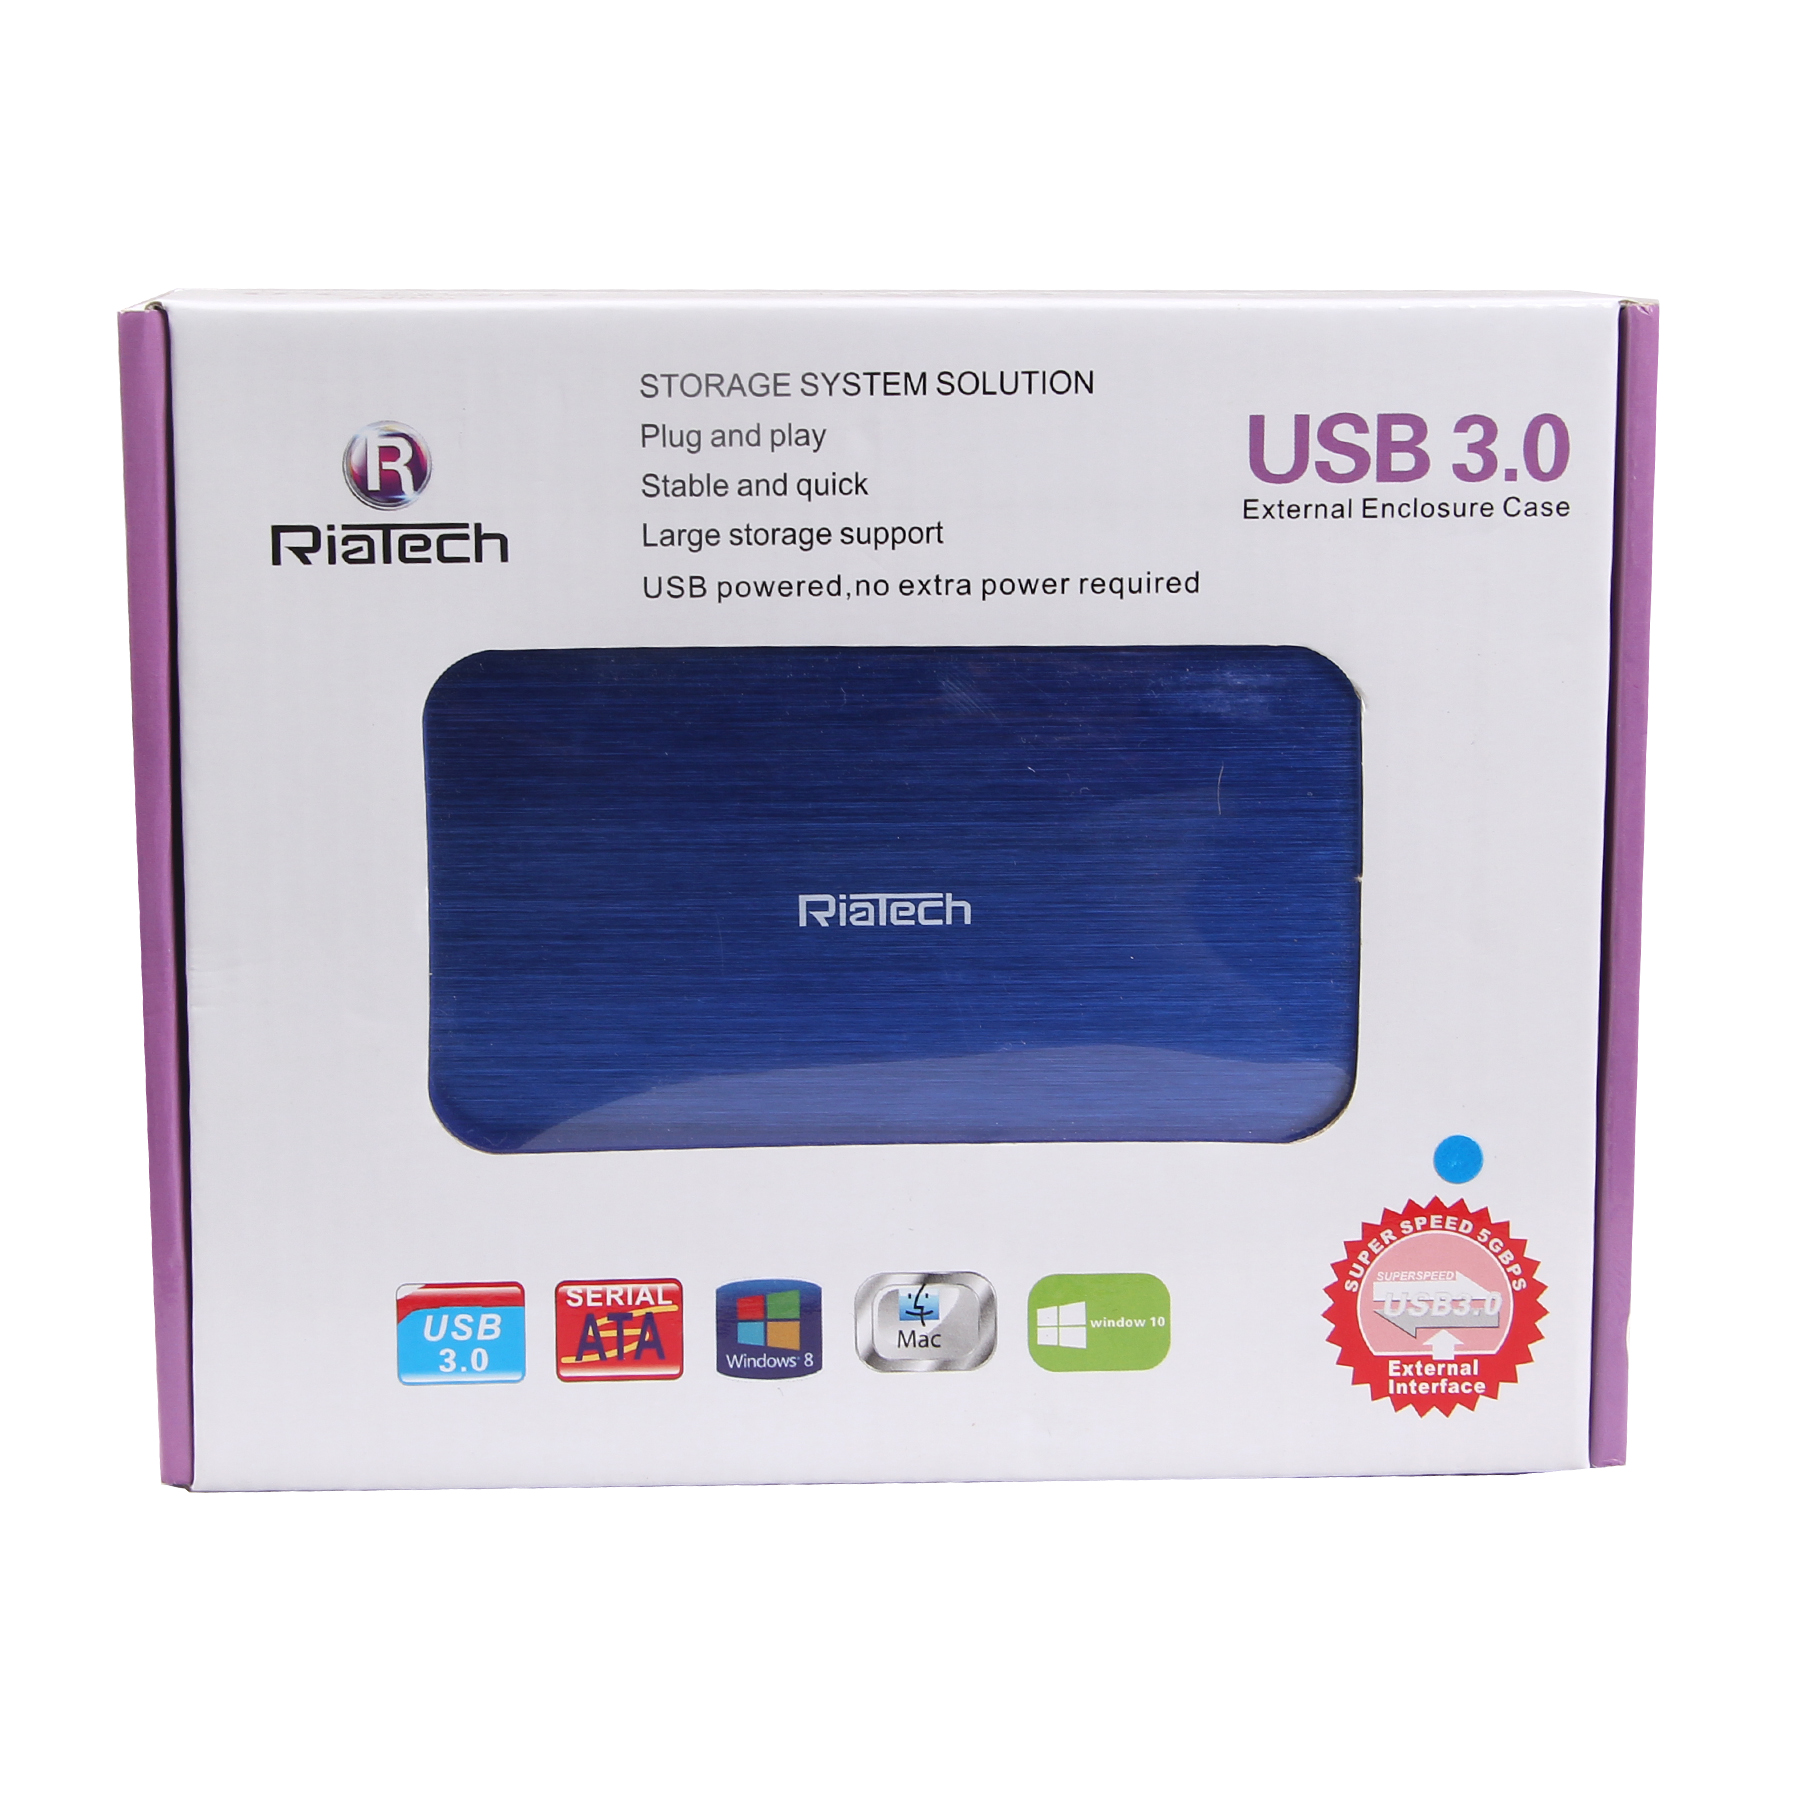 USB 3.0 Enclosure